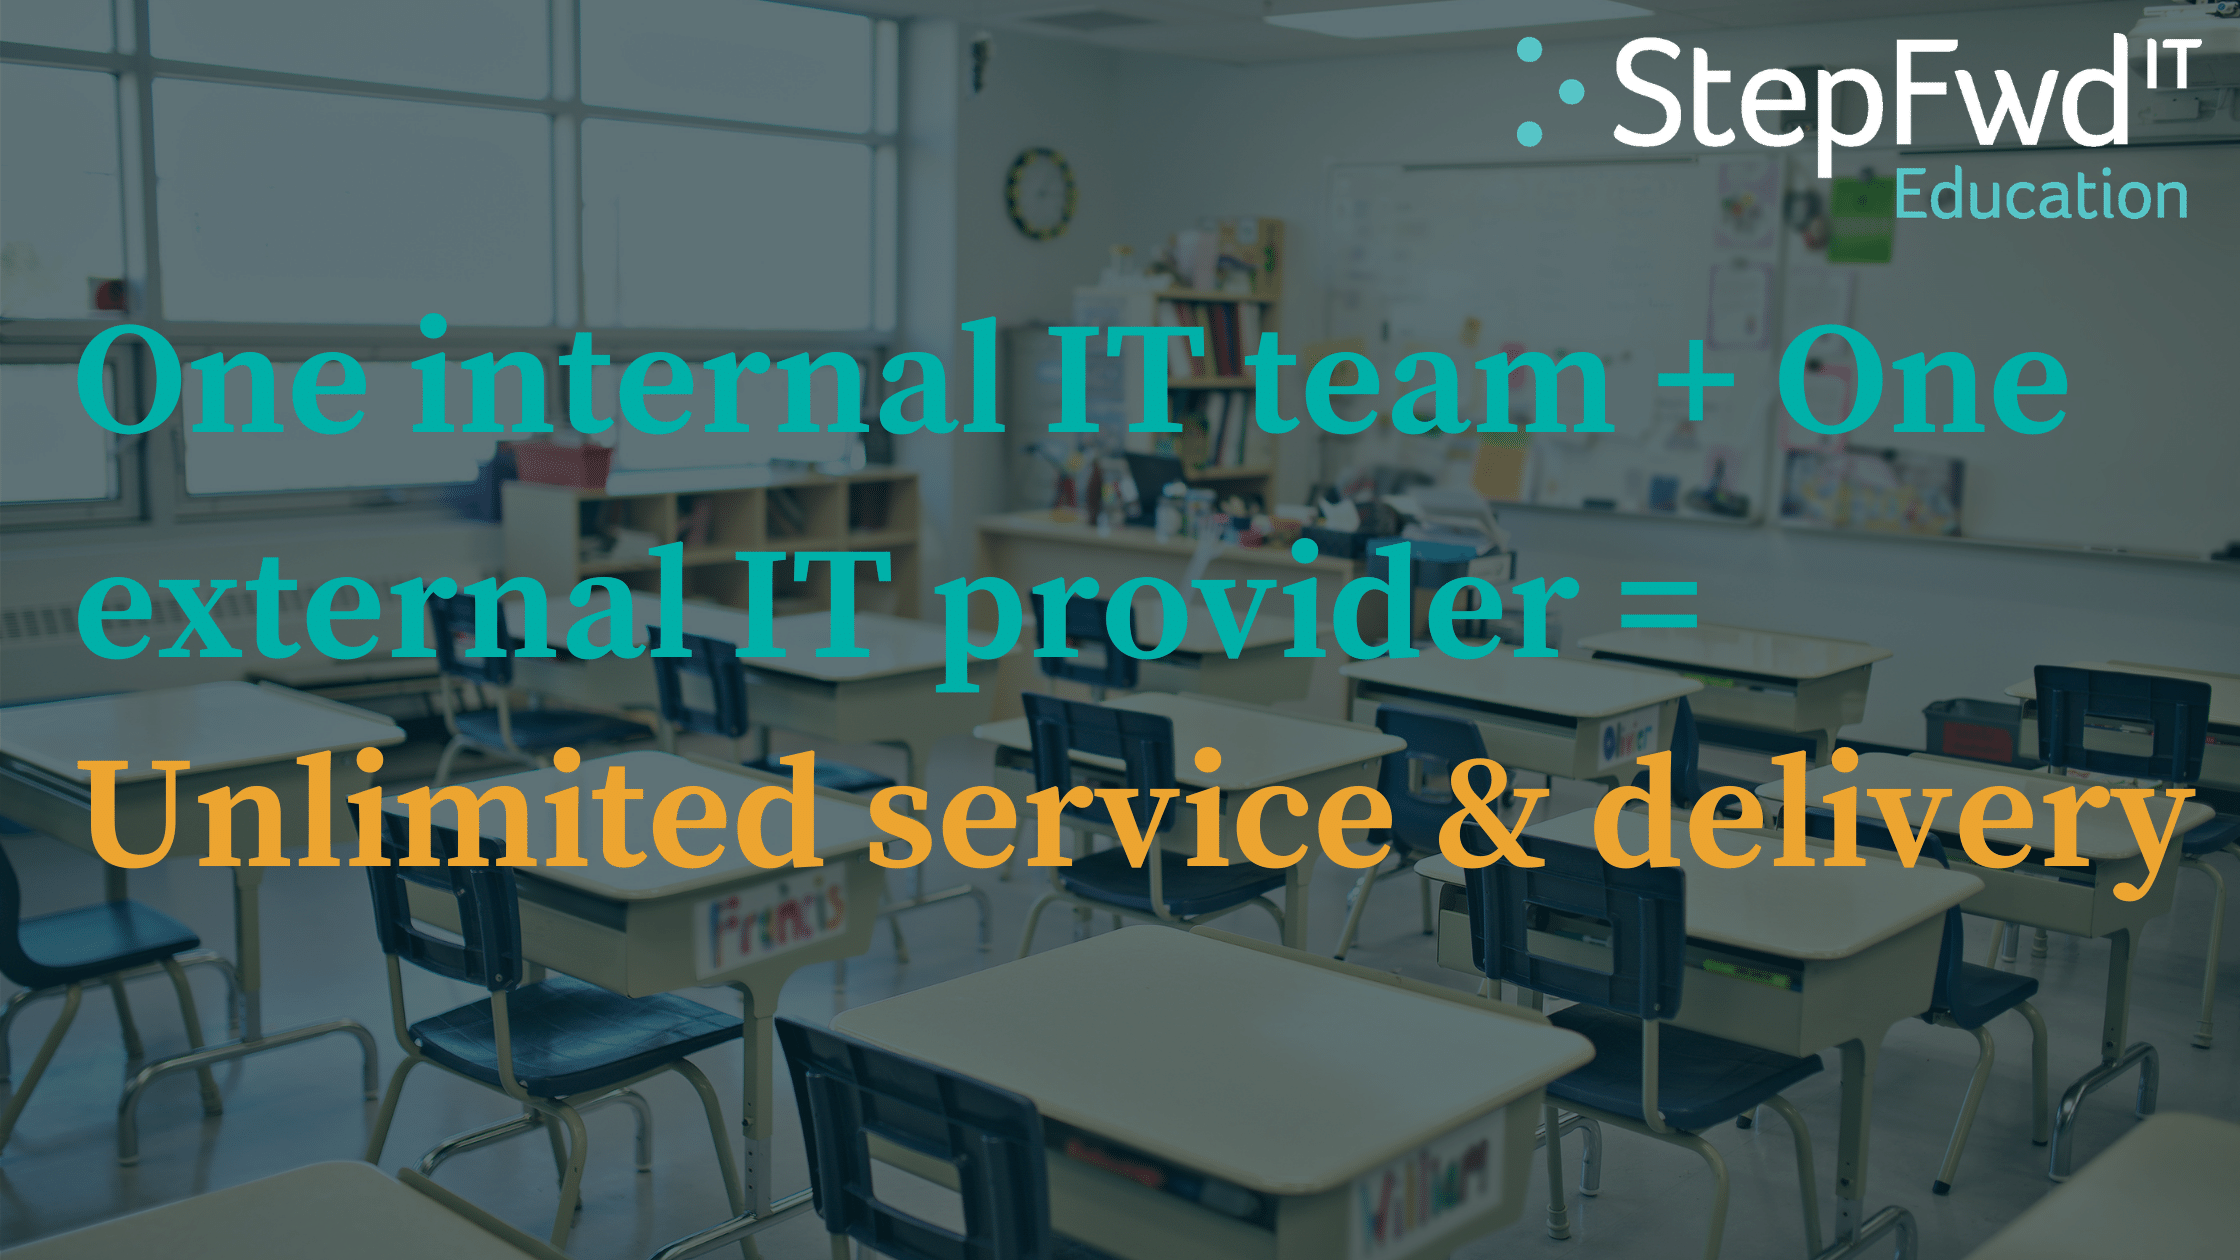 One internal IT team + One external IT provider = Unlimited service & delivery